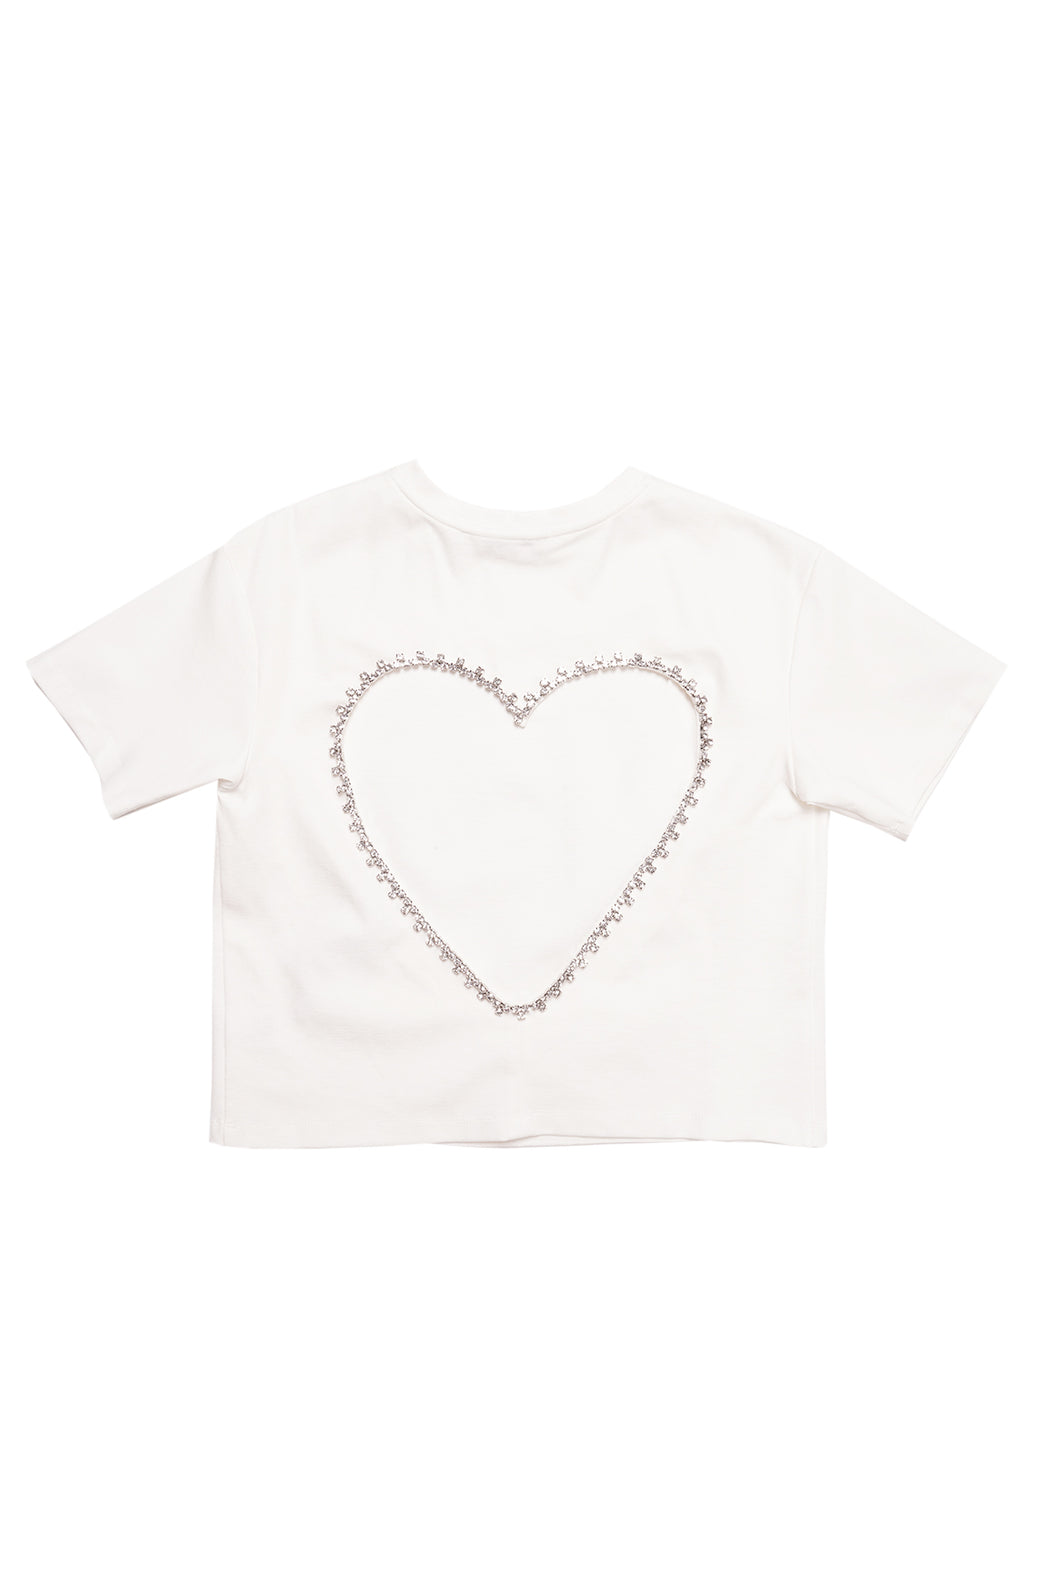 Open Heart Relaxed Tee - White